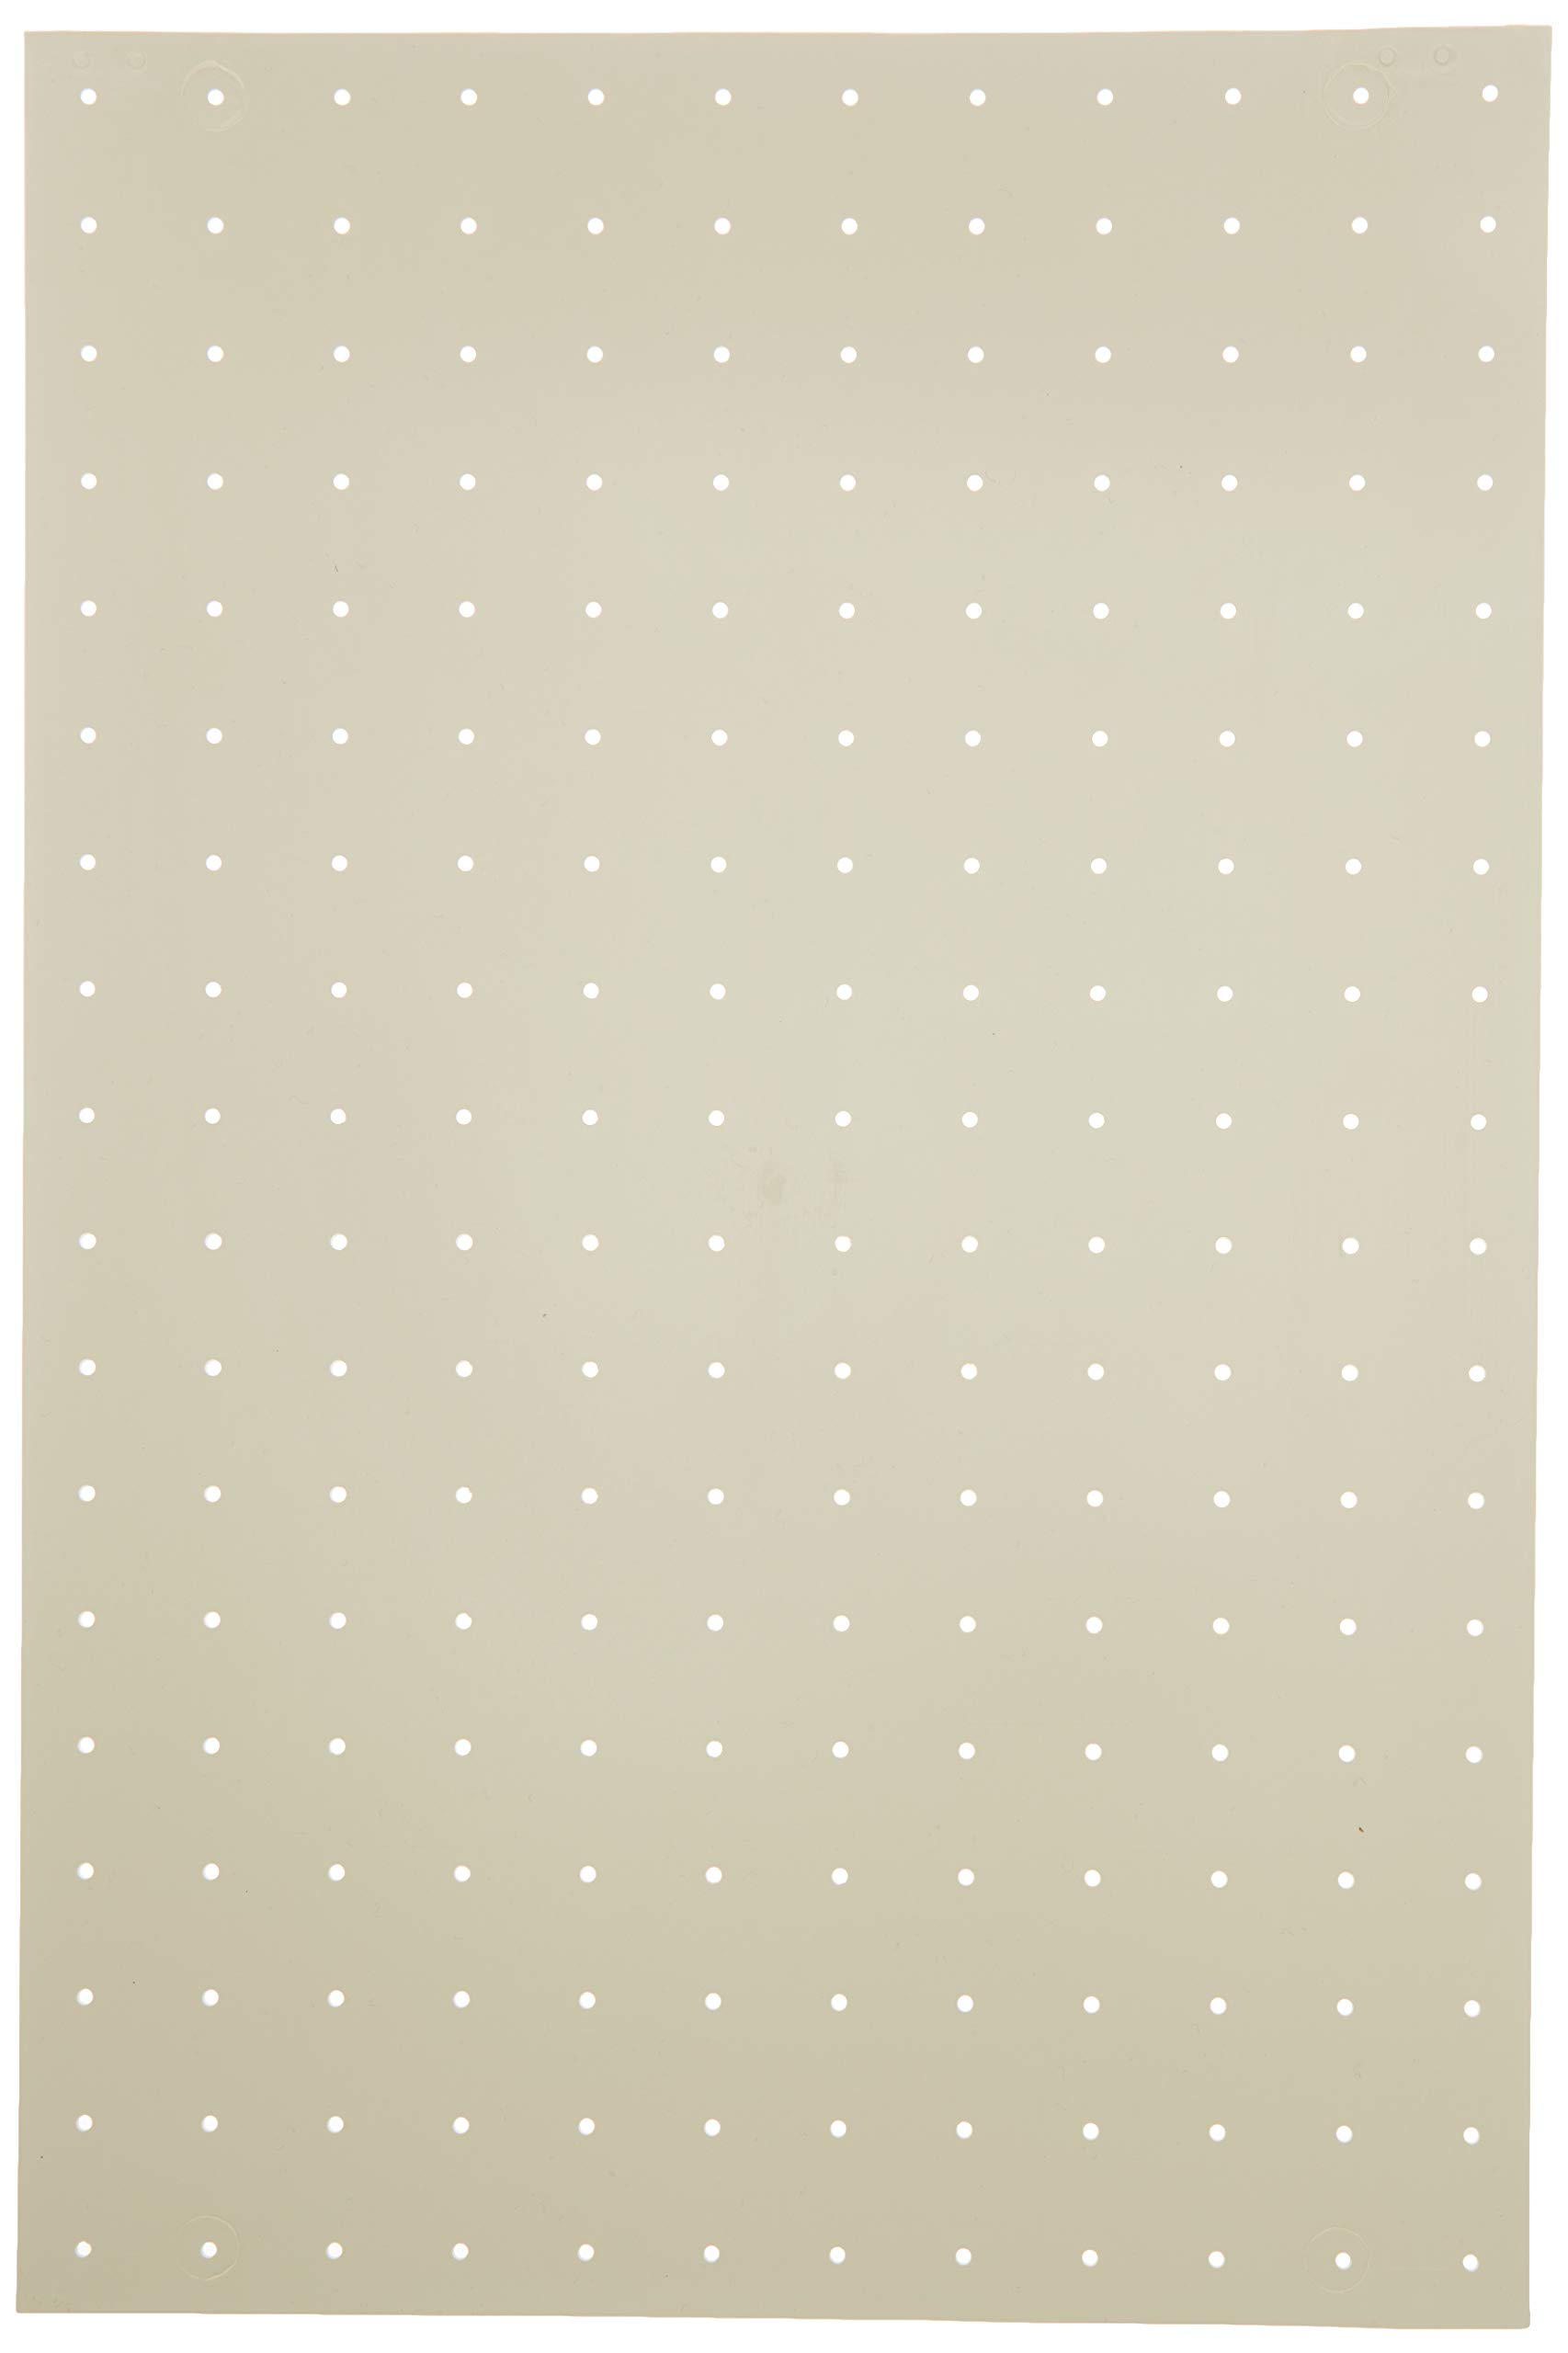 Rolyan Splinting Material Sheets, Tailor Splint, Beige, 1/16'' x 12'' x 18'', 1% Perforated, 4 Sheets